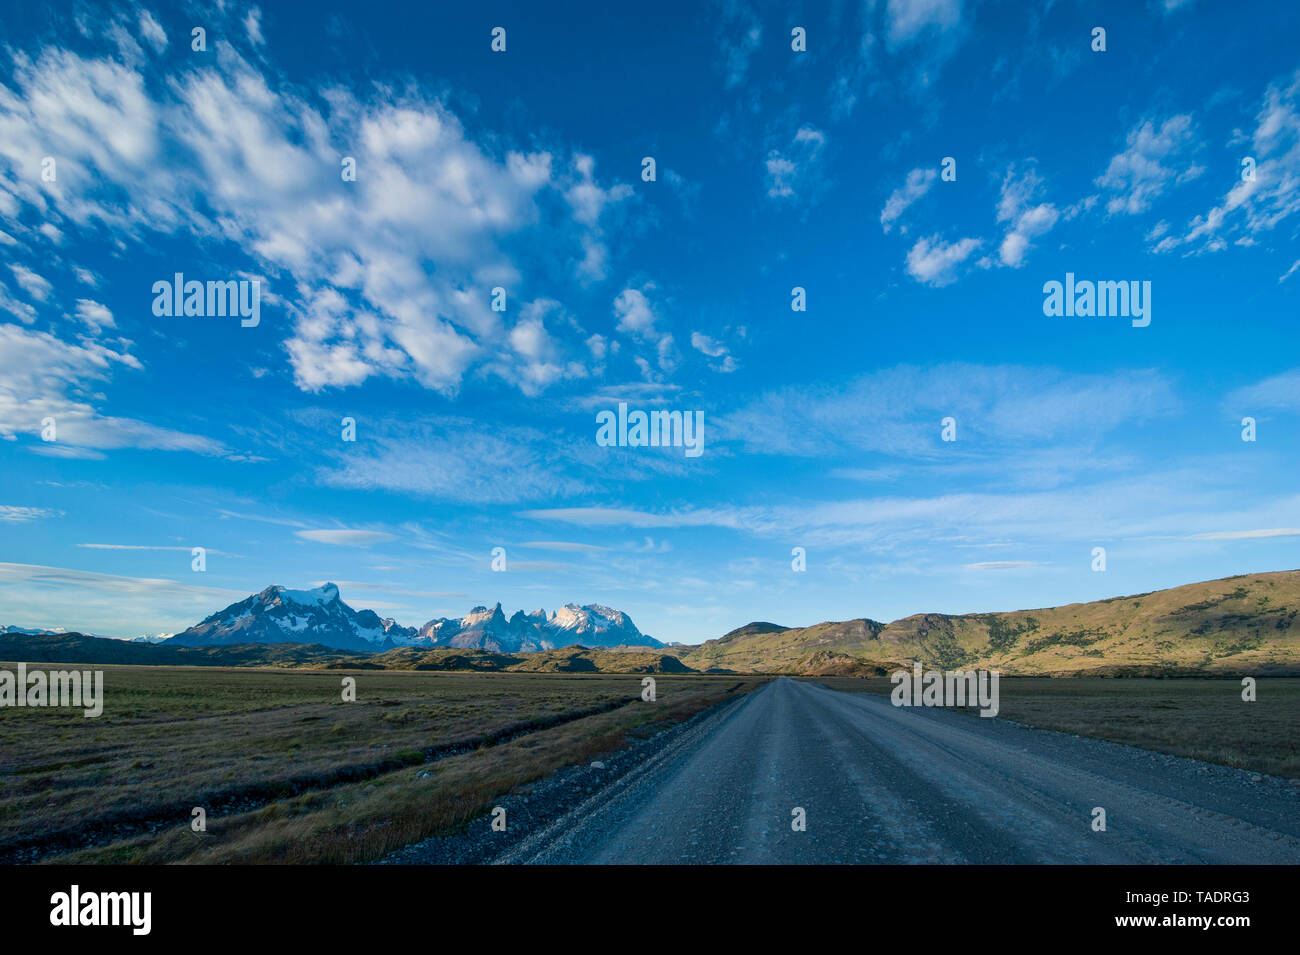 Chile, Patagonia, Straight road leading through the Torres del Paine National Park - Stock Image